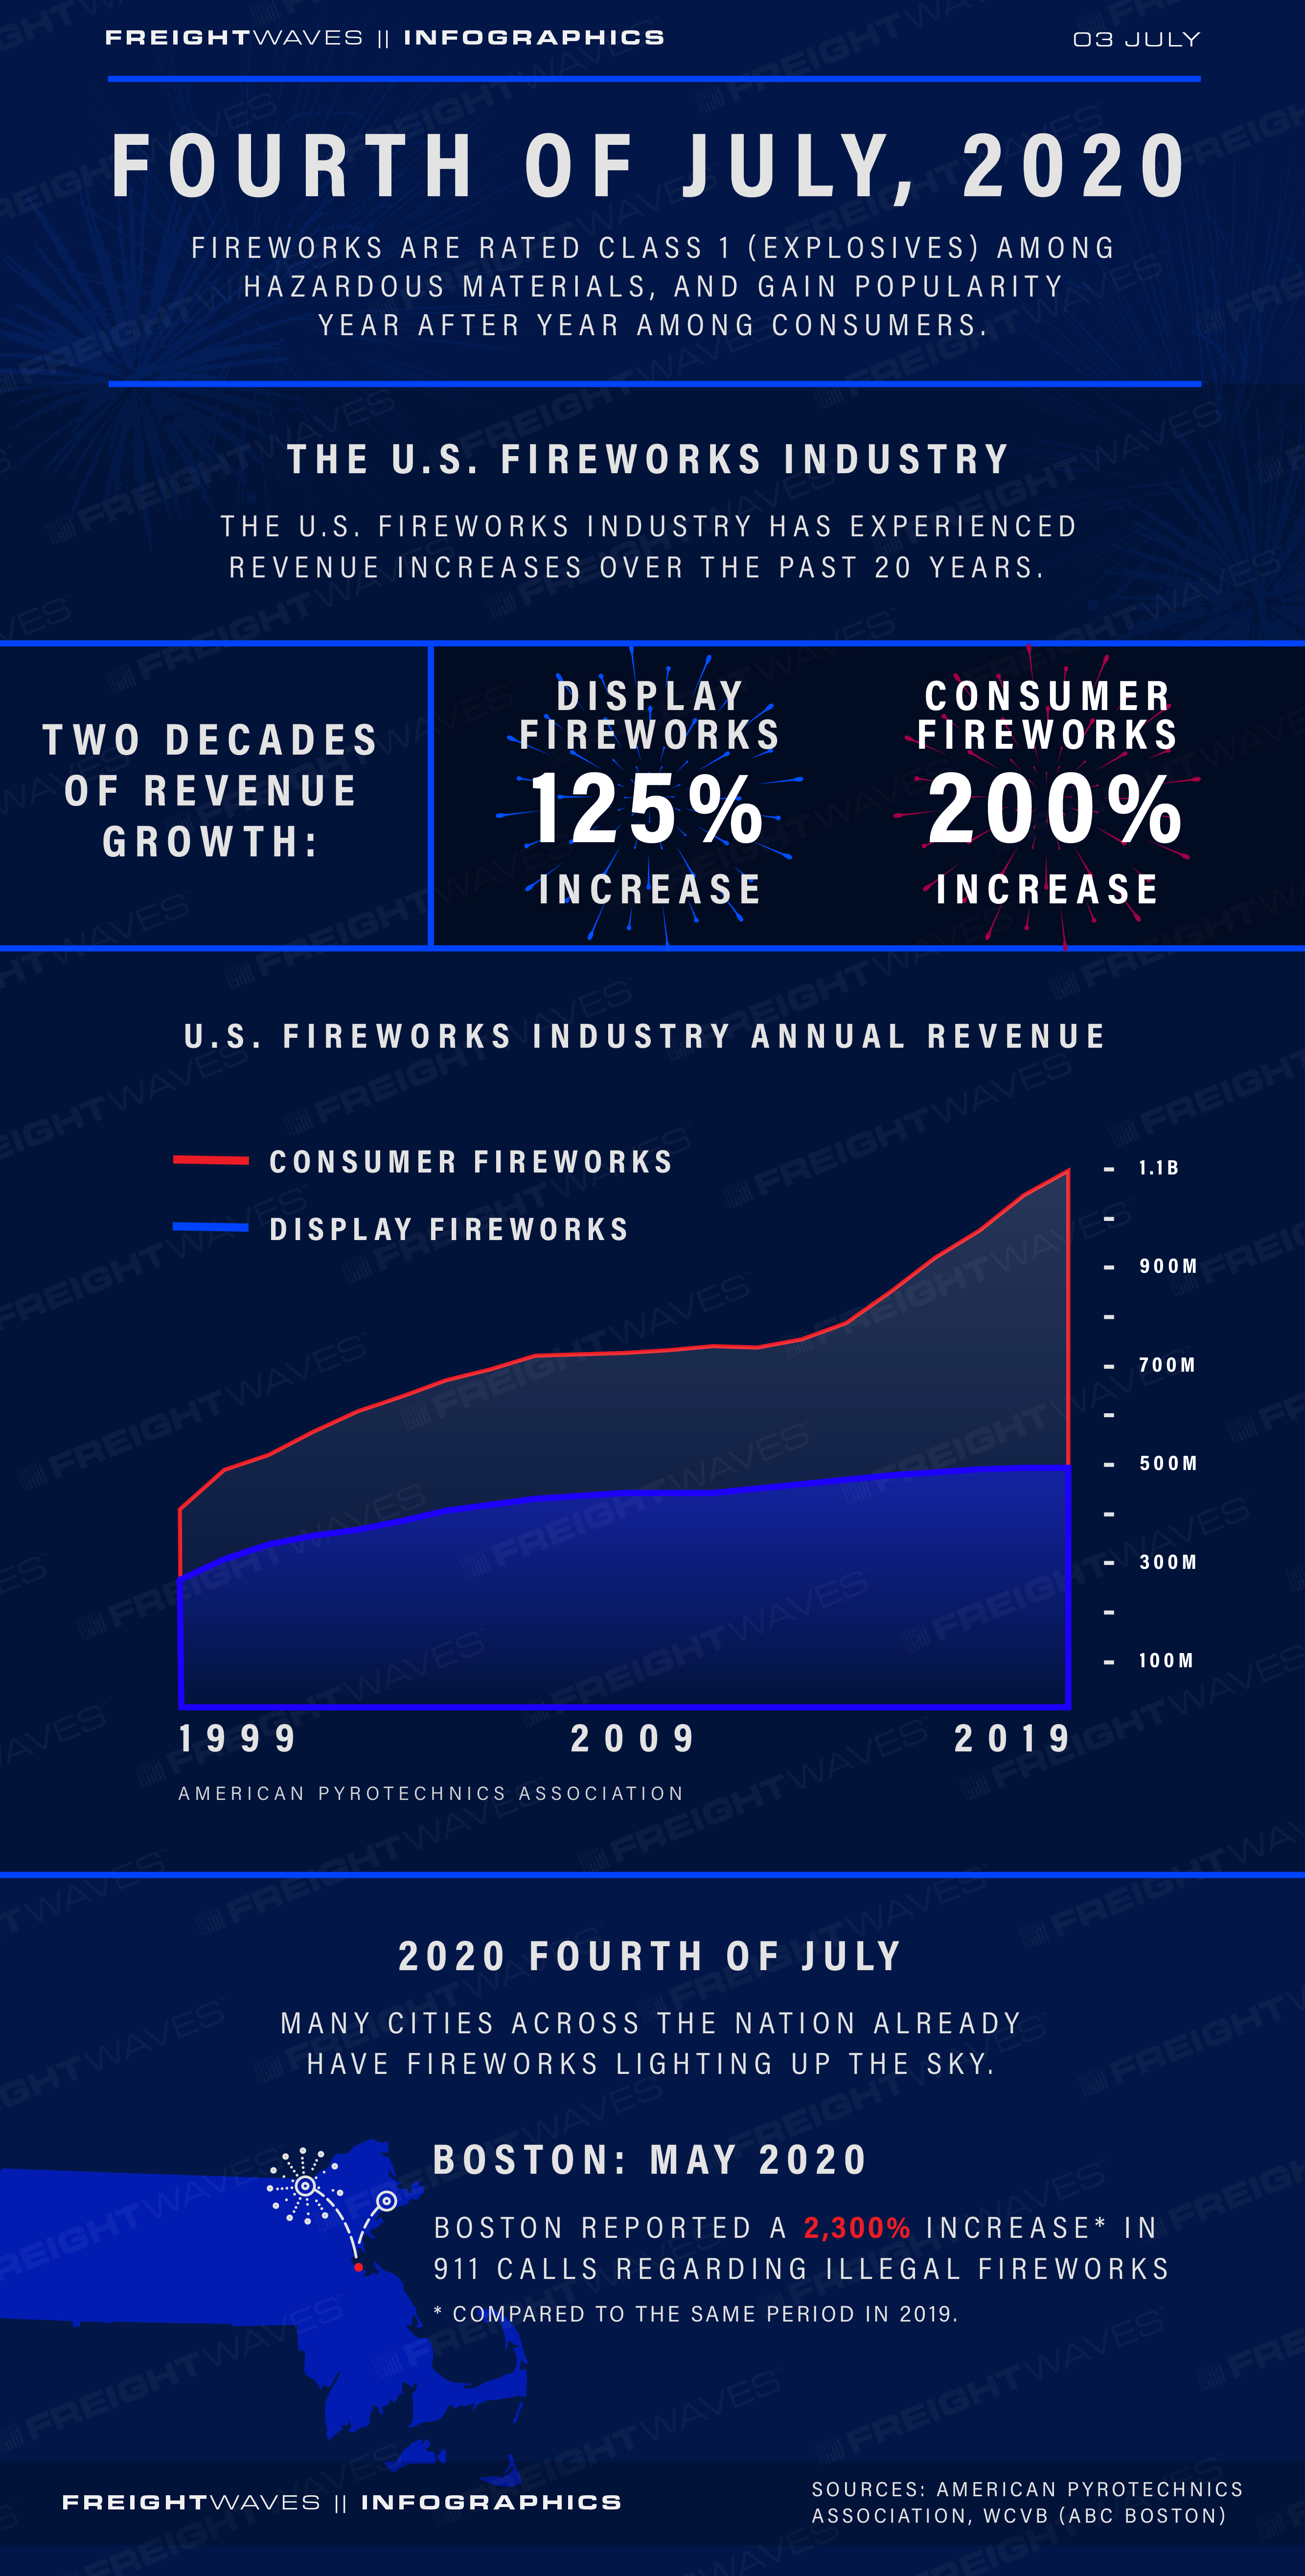 FreightWaves Infographic: 4th of July 2020